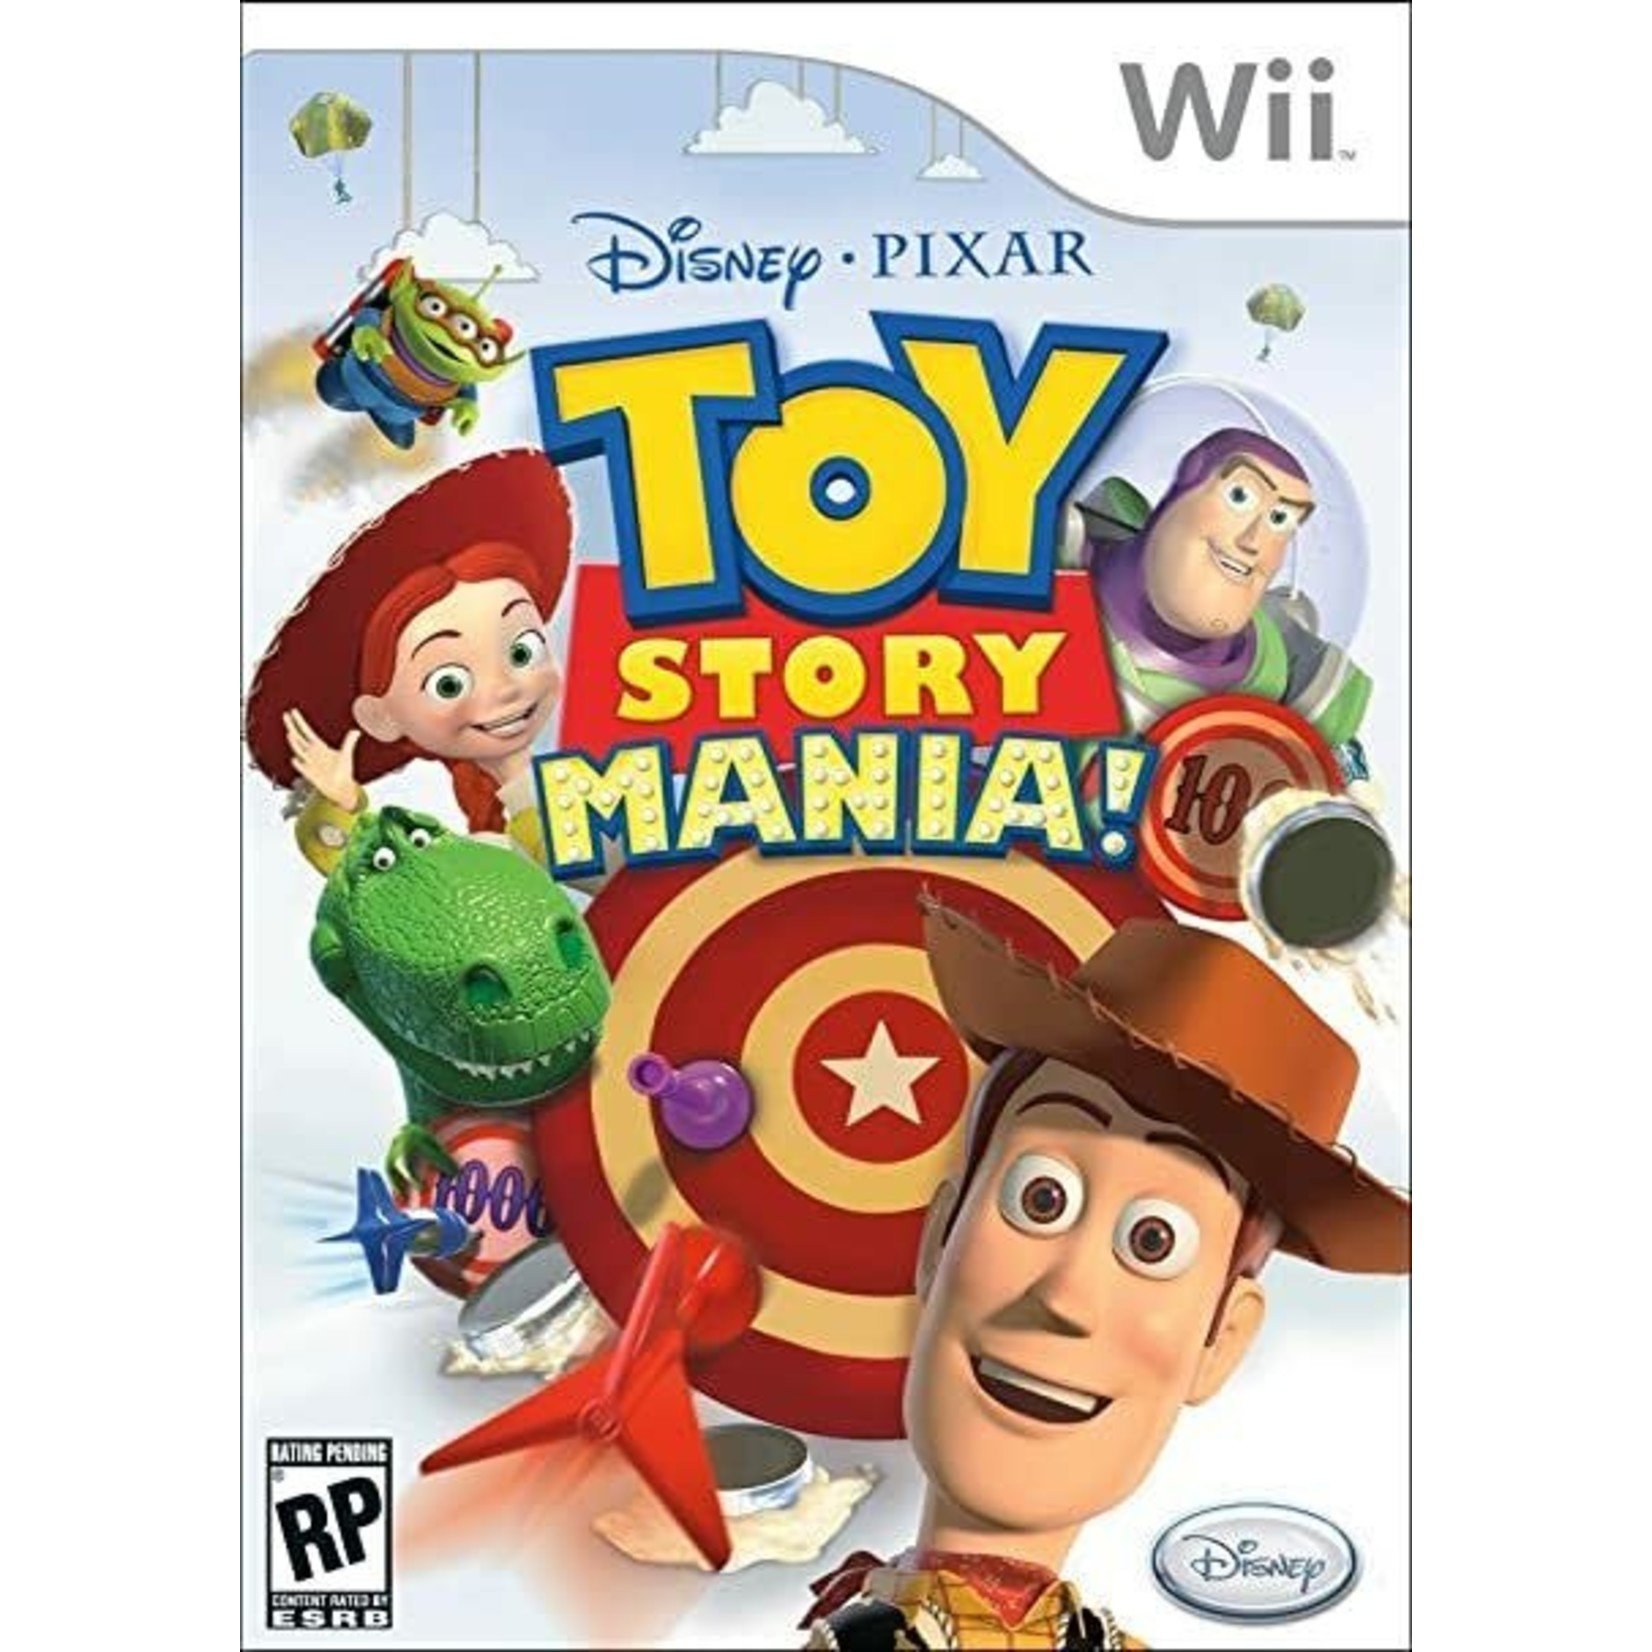 wii-Toy Story Mania